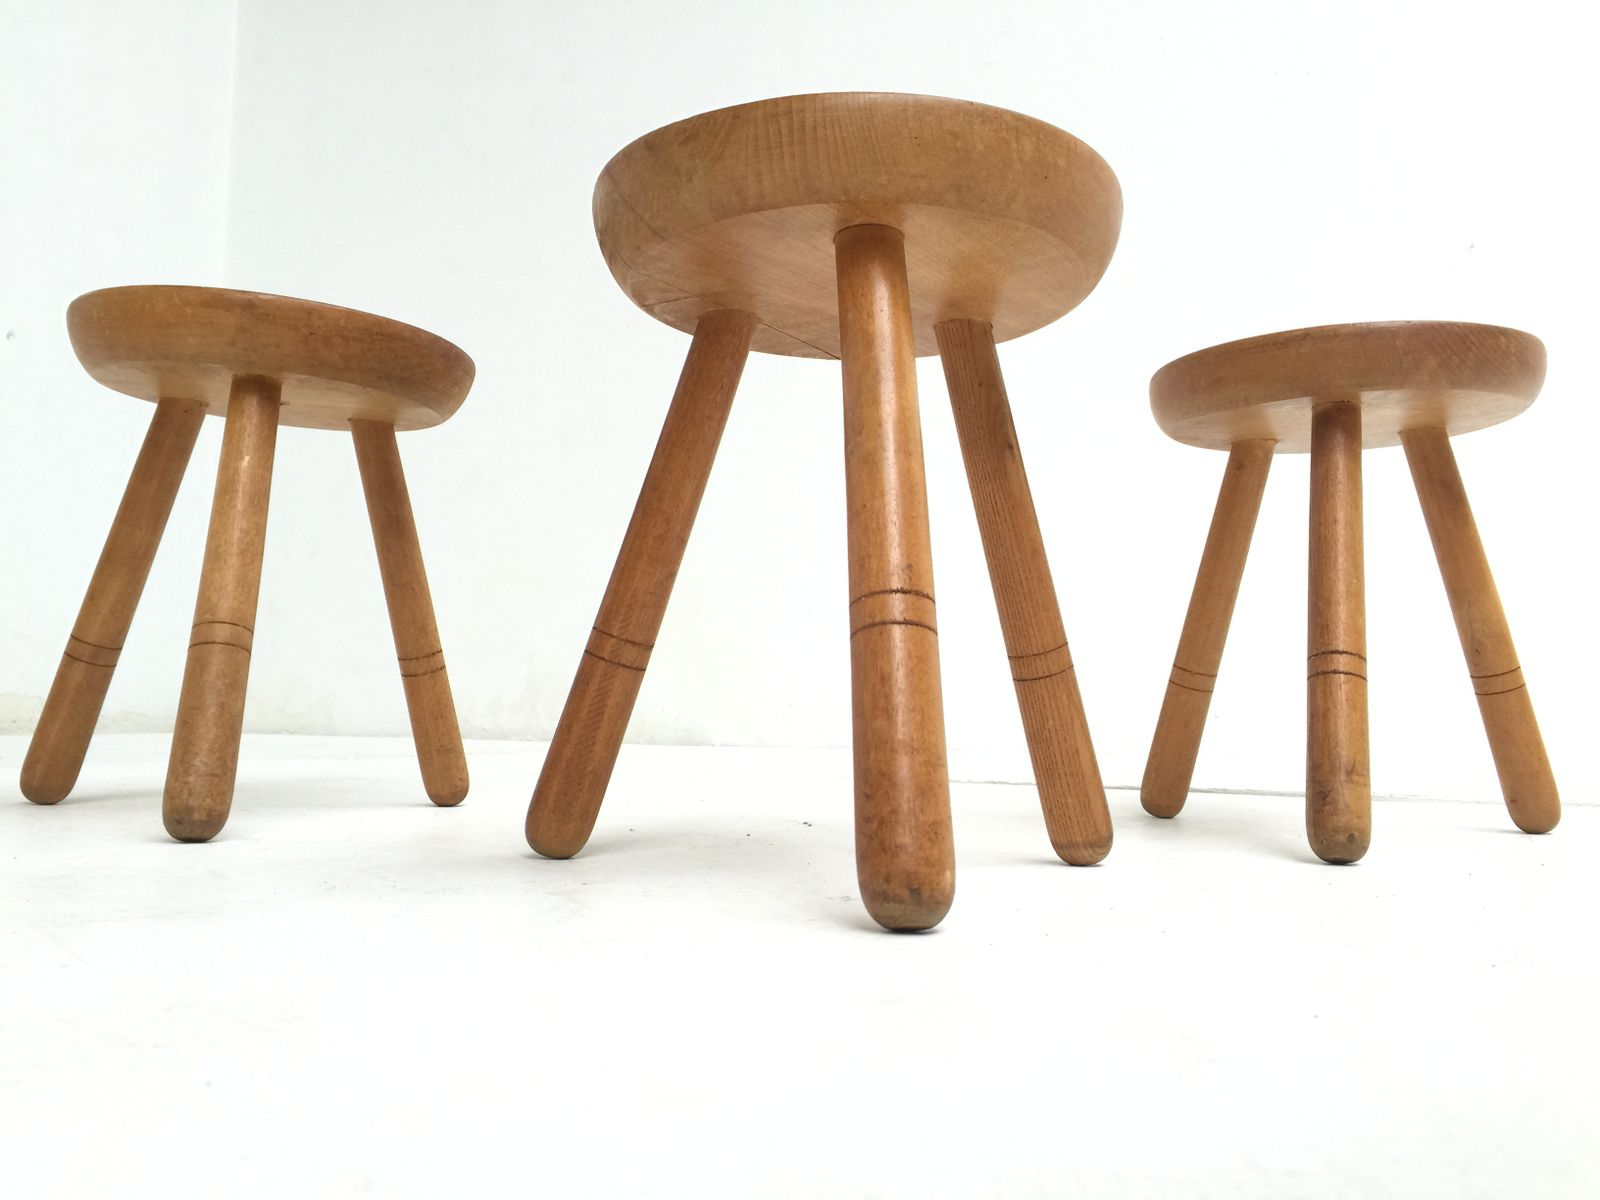 Superb img of Vintage Birch Wood Stools 1970s Set of 3 for sale at Pamono with #7B4D2D color and 1600x1200 pixels